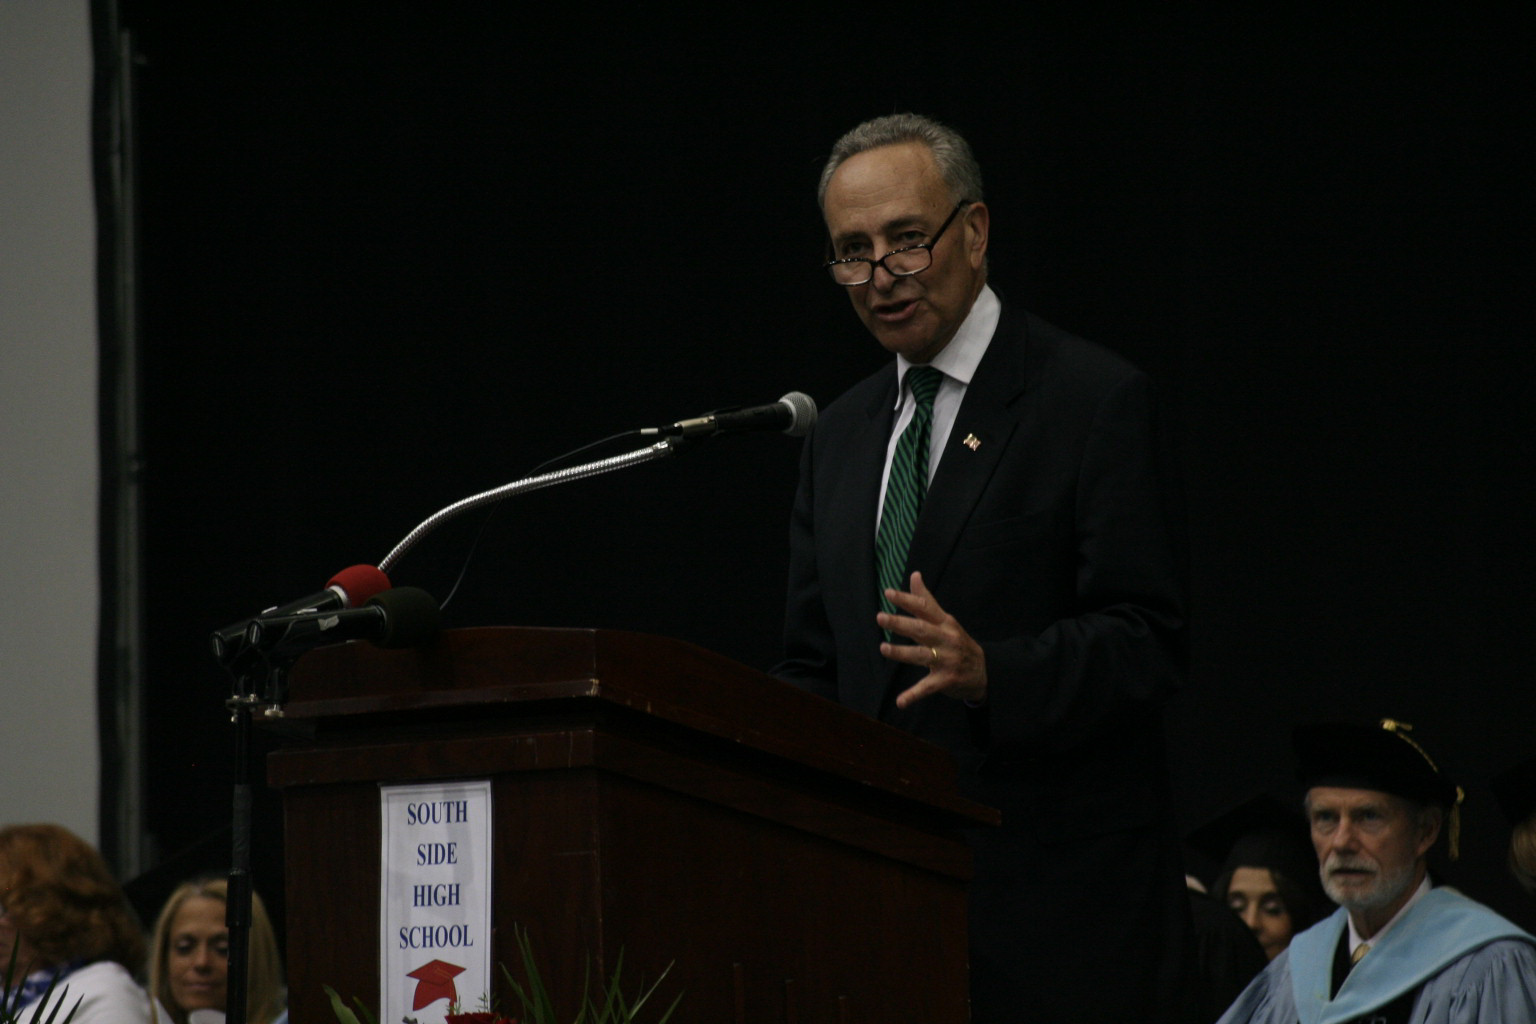 Sen. Chuck Schumer spoke about seizing opportunities.